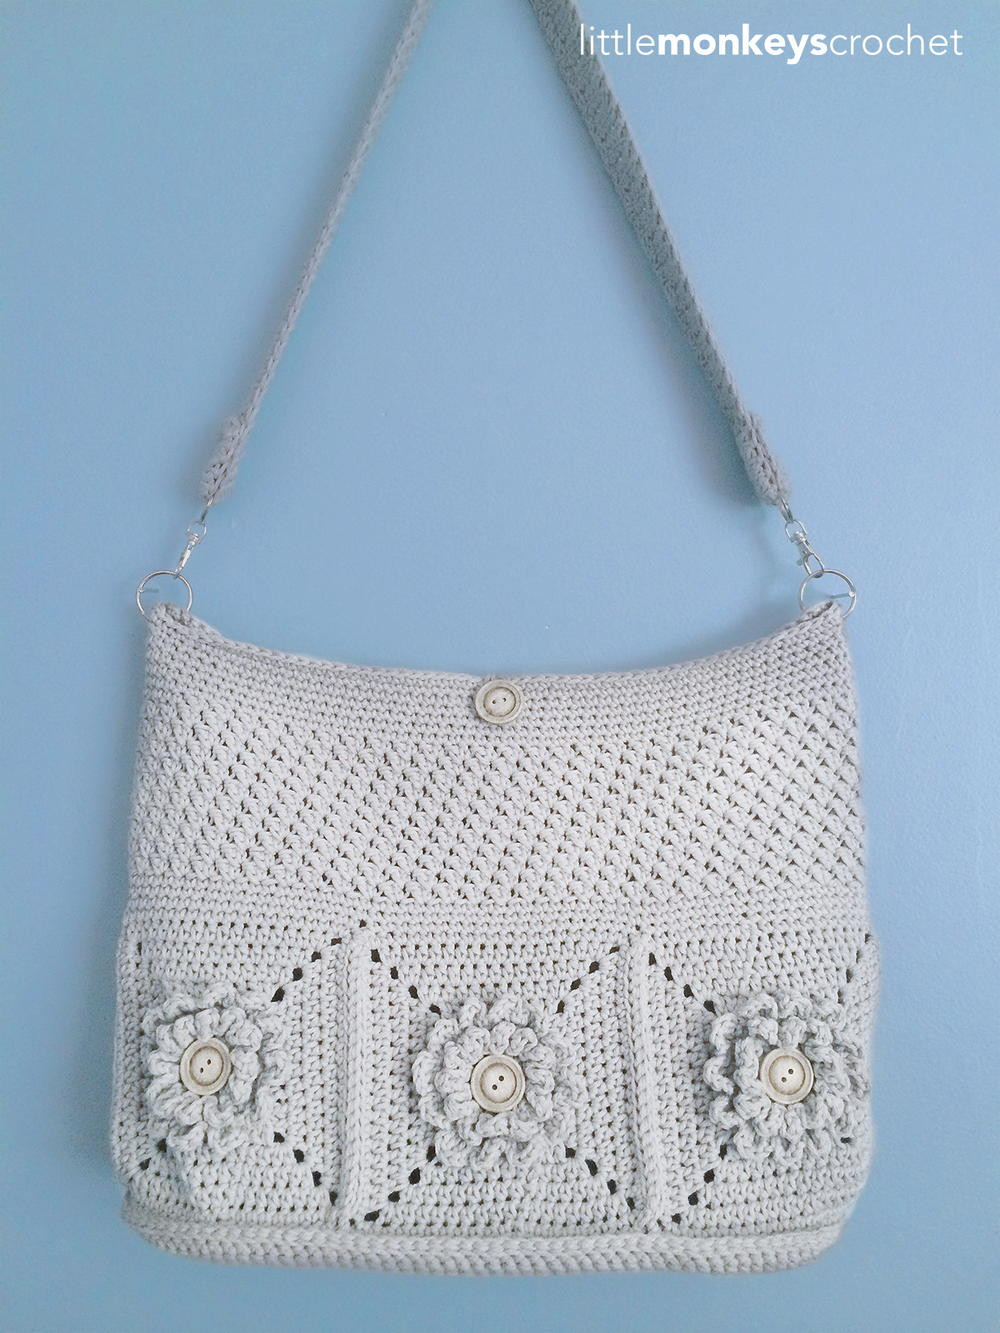 Best Of Wildflower Shoulder Crochet Bag Crochet tote Of Adorable 41 Images Crochet tote